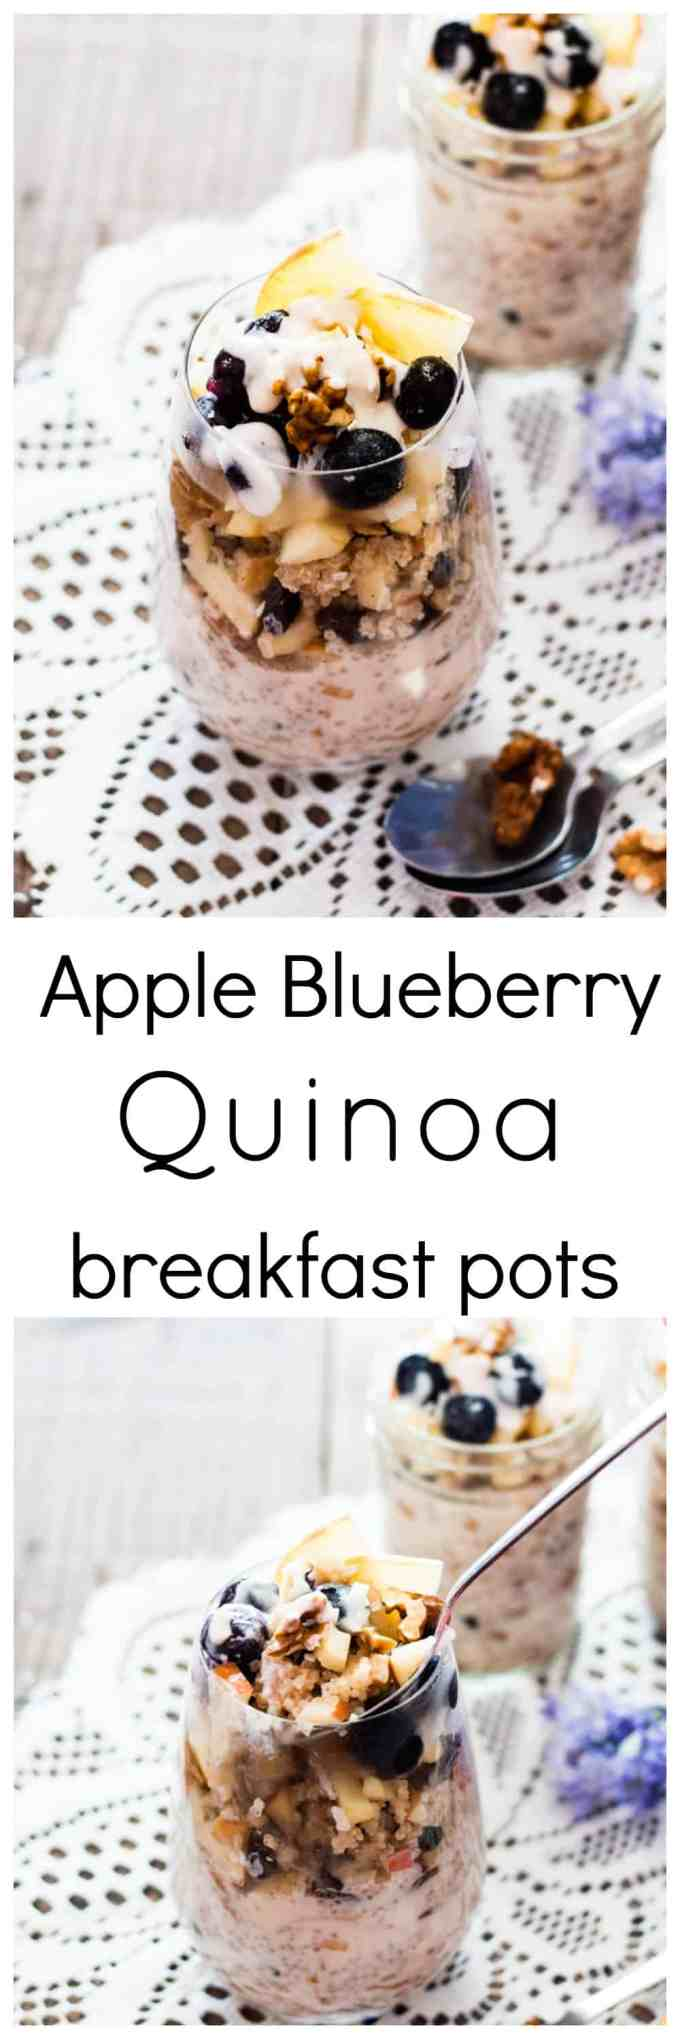 Apple Blueberry Quinoa Breakfast Pot with Maple Yogurt Dressing. The perfect make ahead breakfast the whole family will enjoy.